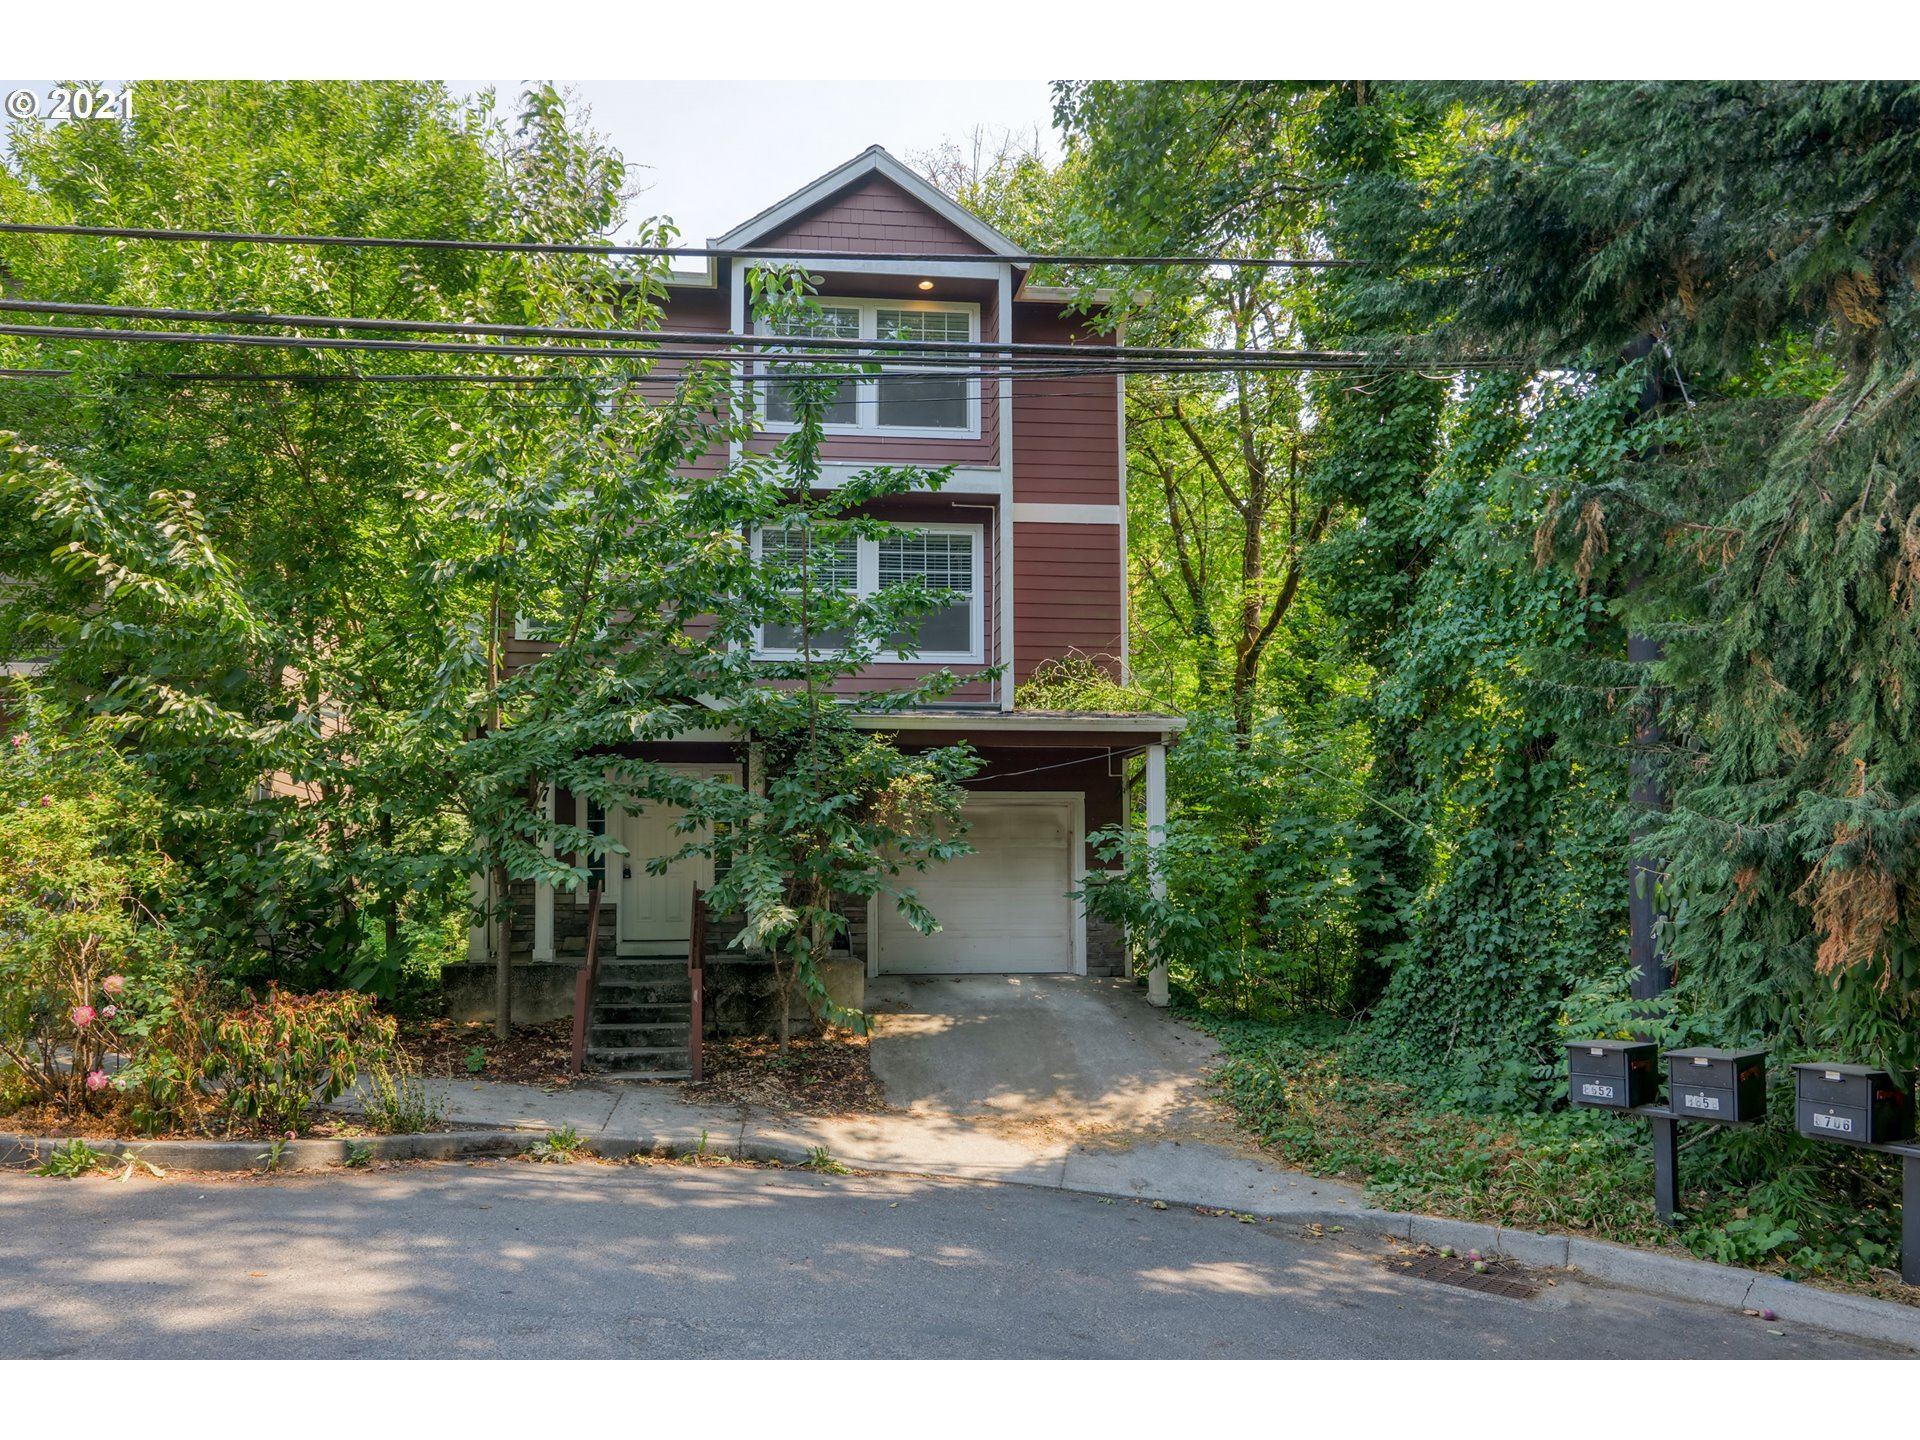 8714 SW 11TH AVE, Portland, OR 97219 - MLS#: 21515437